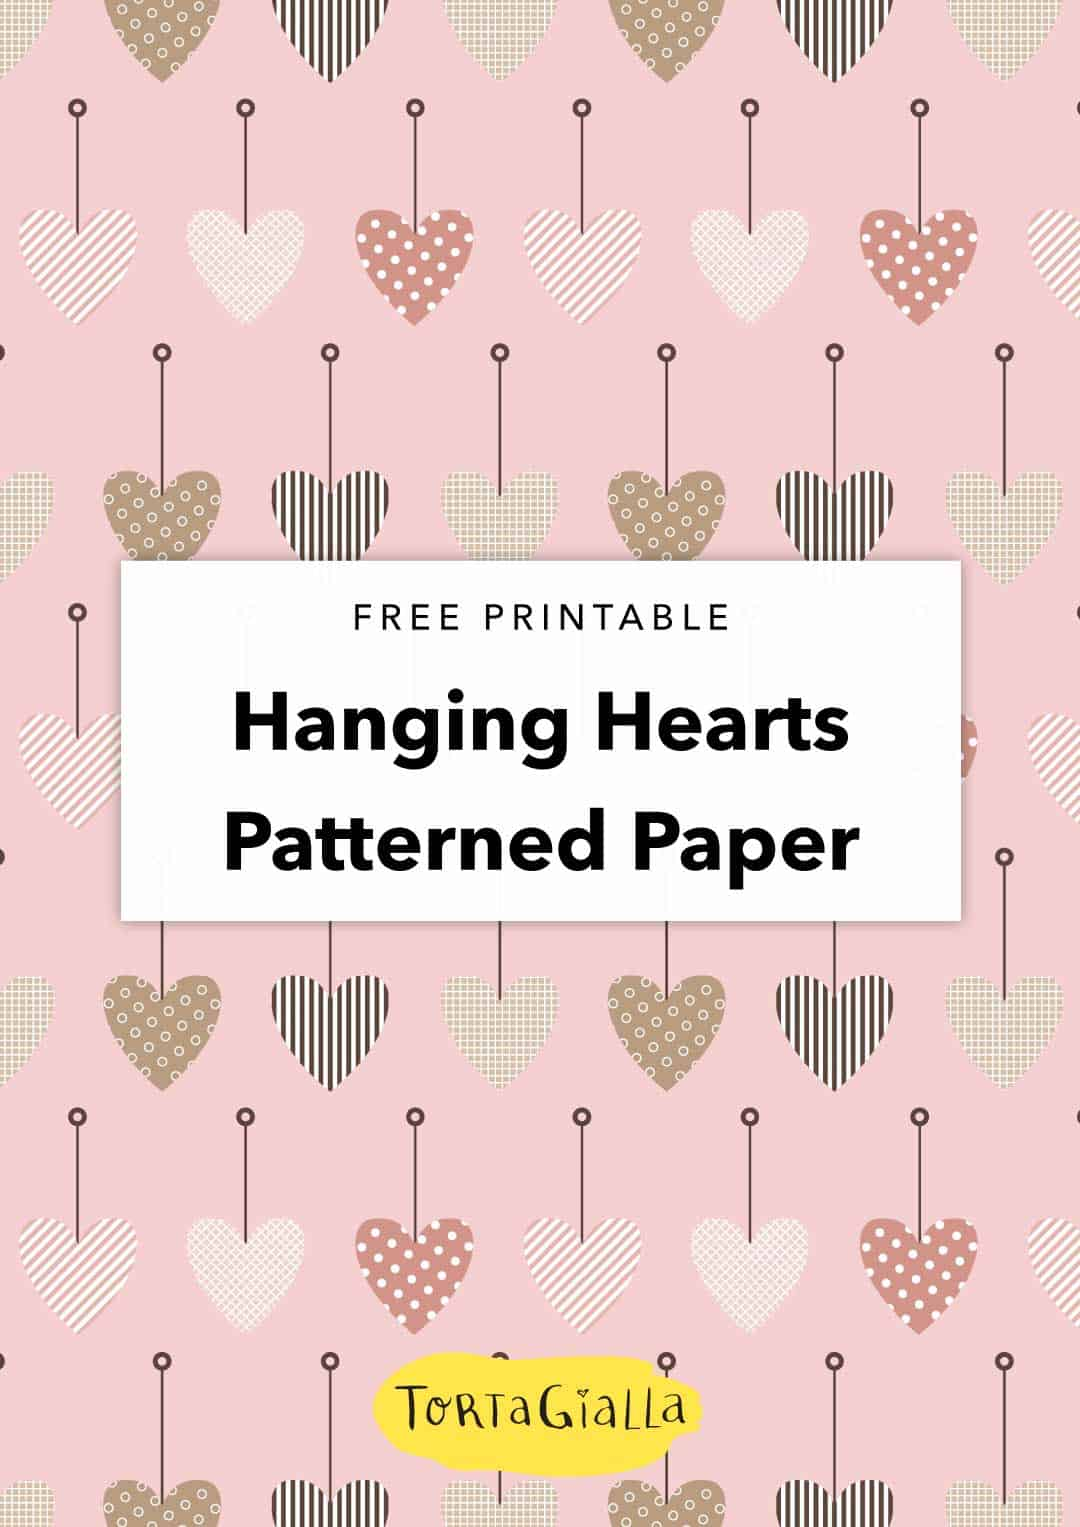 Looking for a pretty paper printable? Check out this free hanging hearts patterned paper design. Use it to decorate your planner, scrapbook and more!